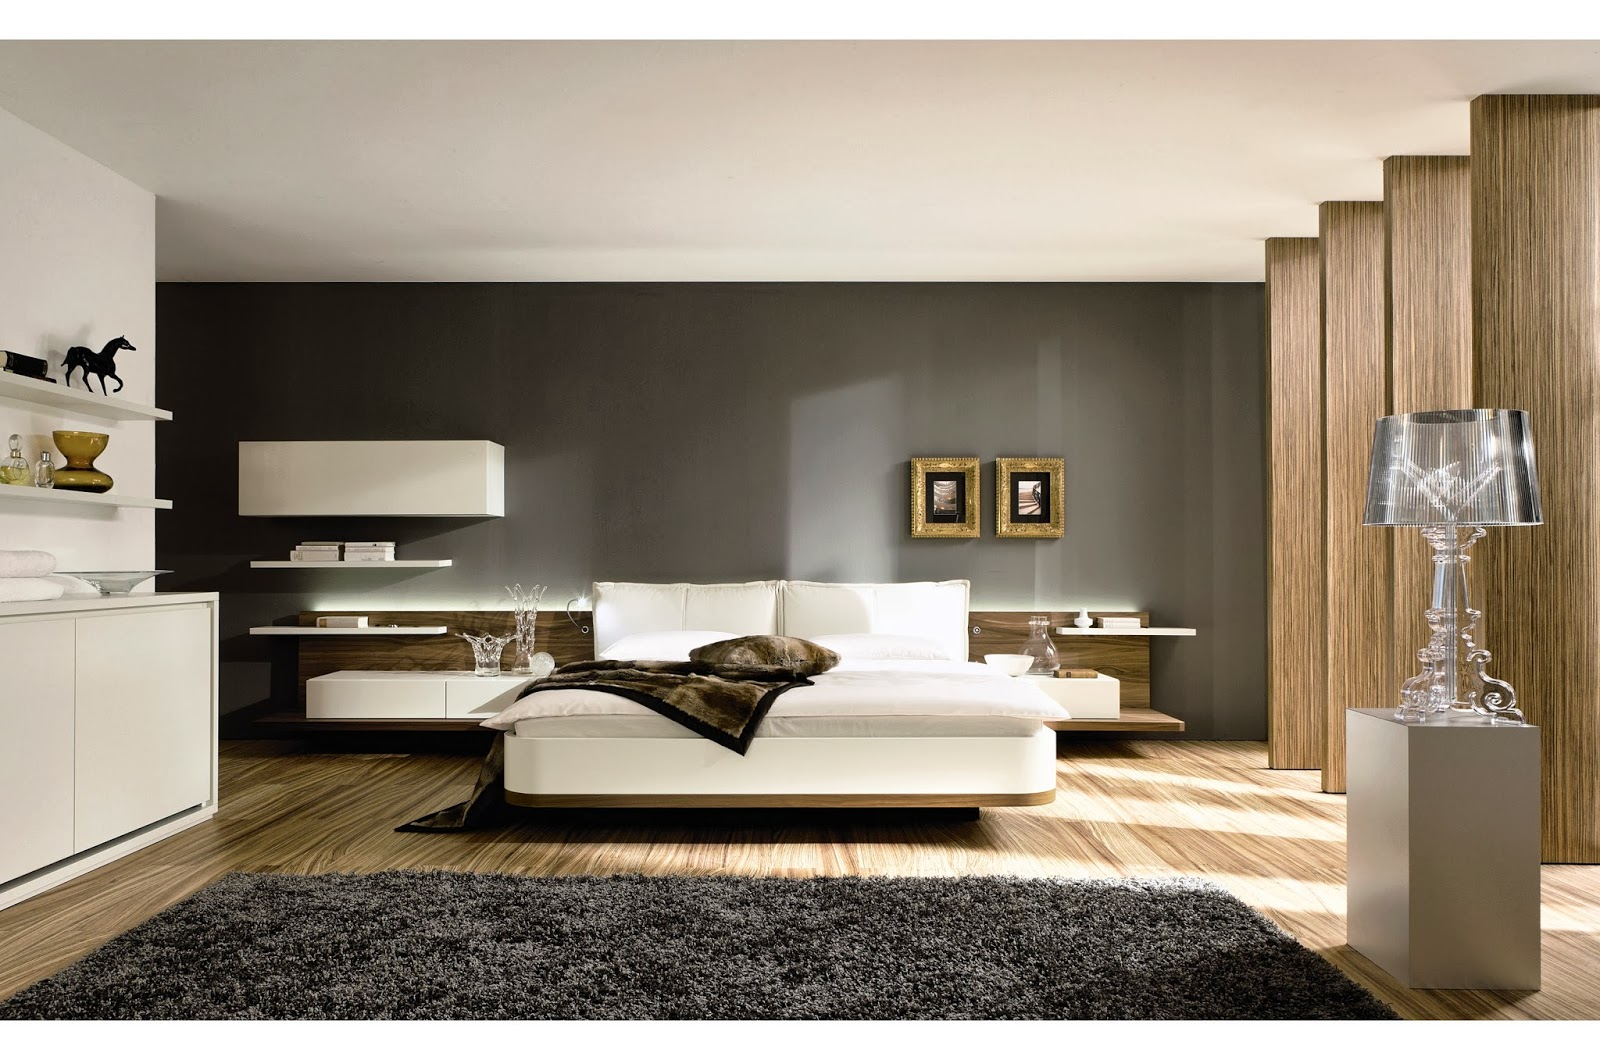 Modern bedroom interior design for Modern architecture interior